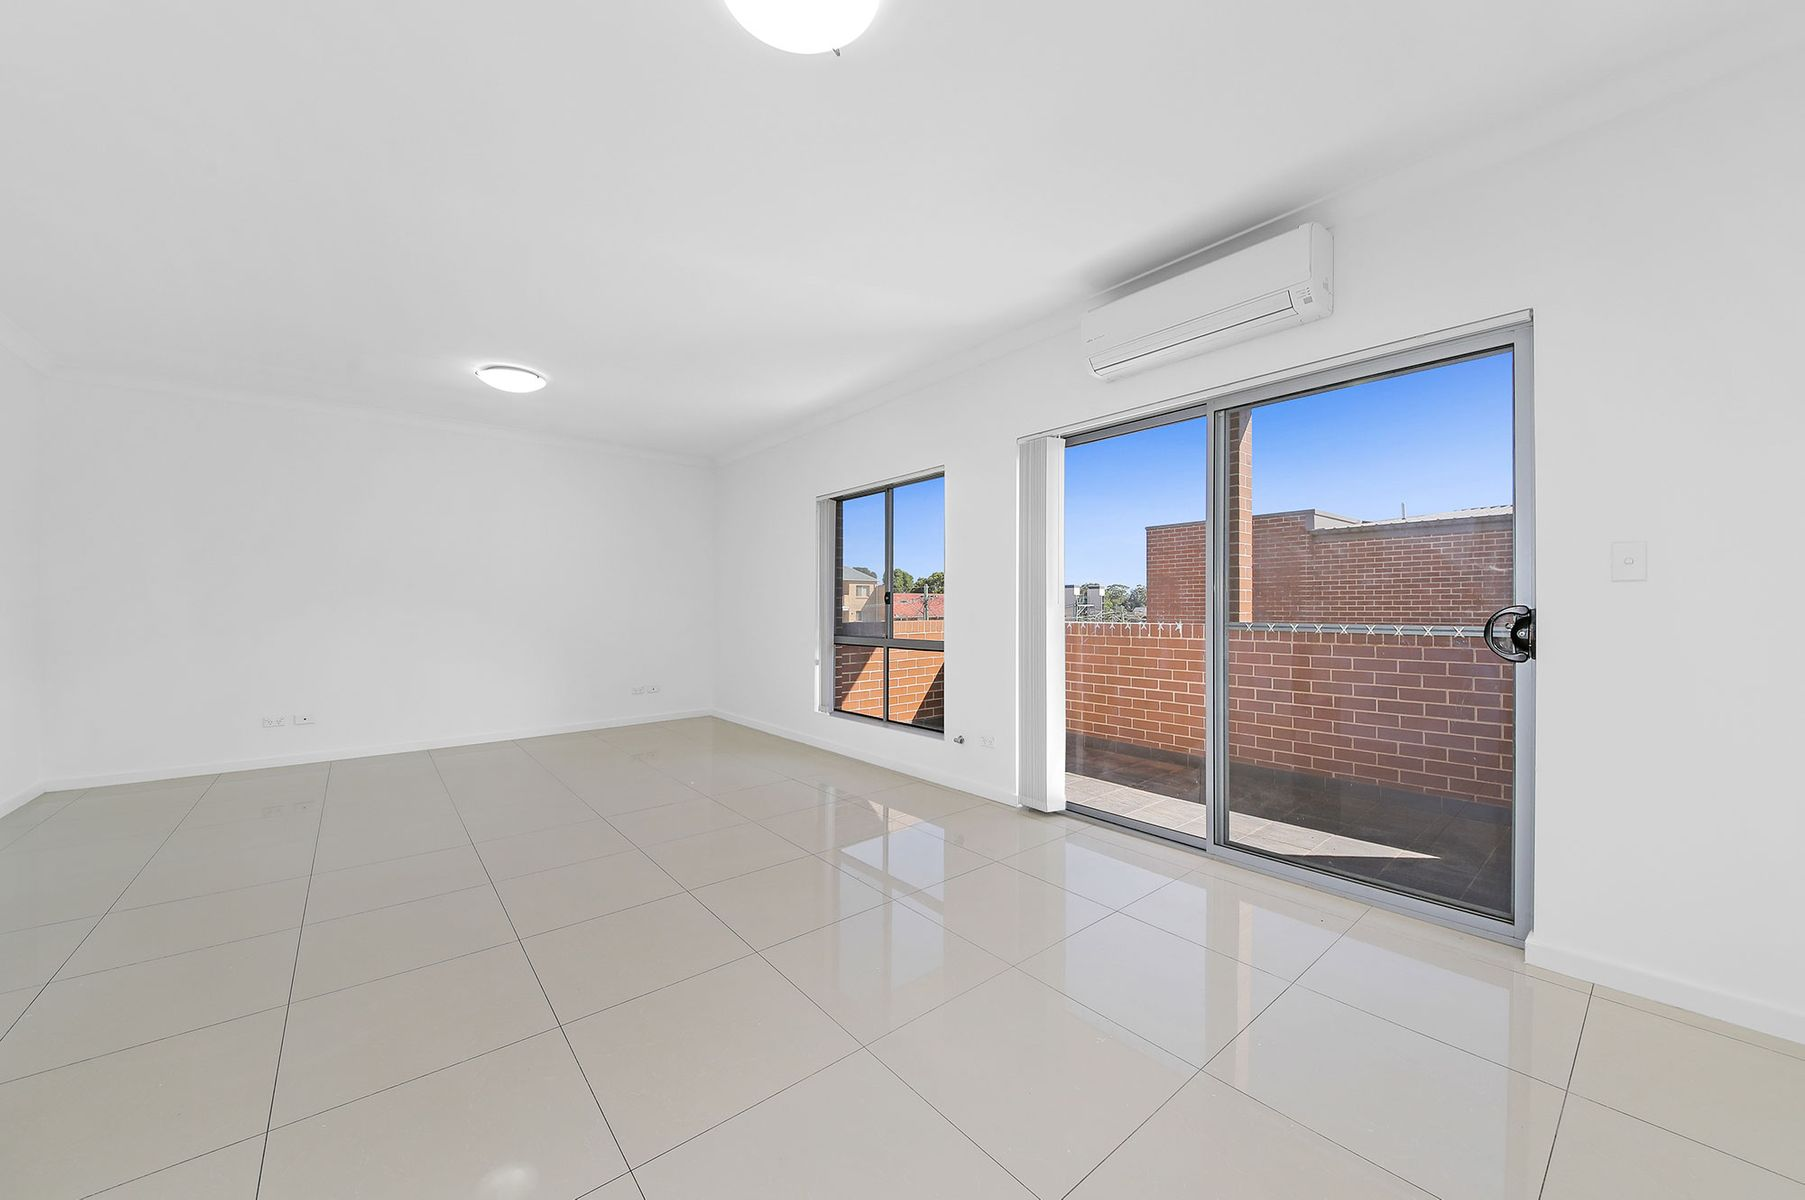 22/4 Macarthur Avenue, Revesby, NSW 2212